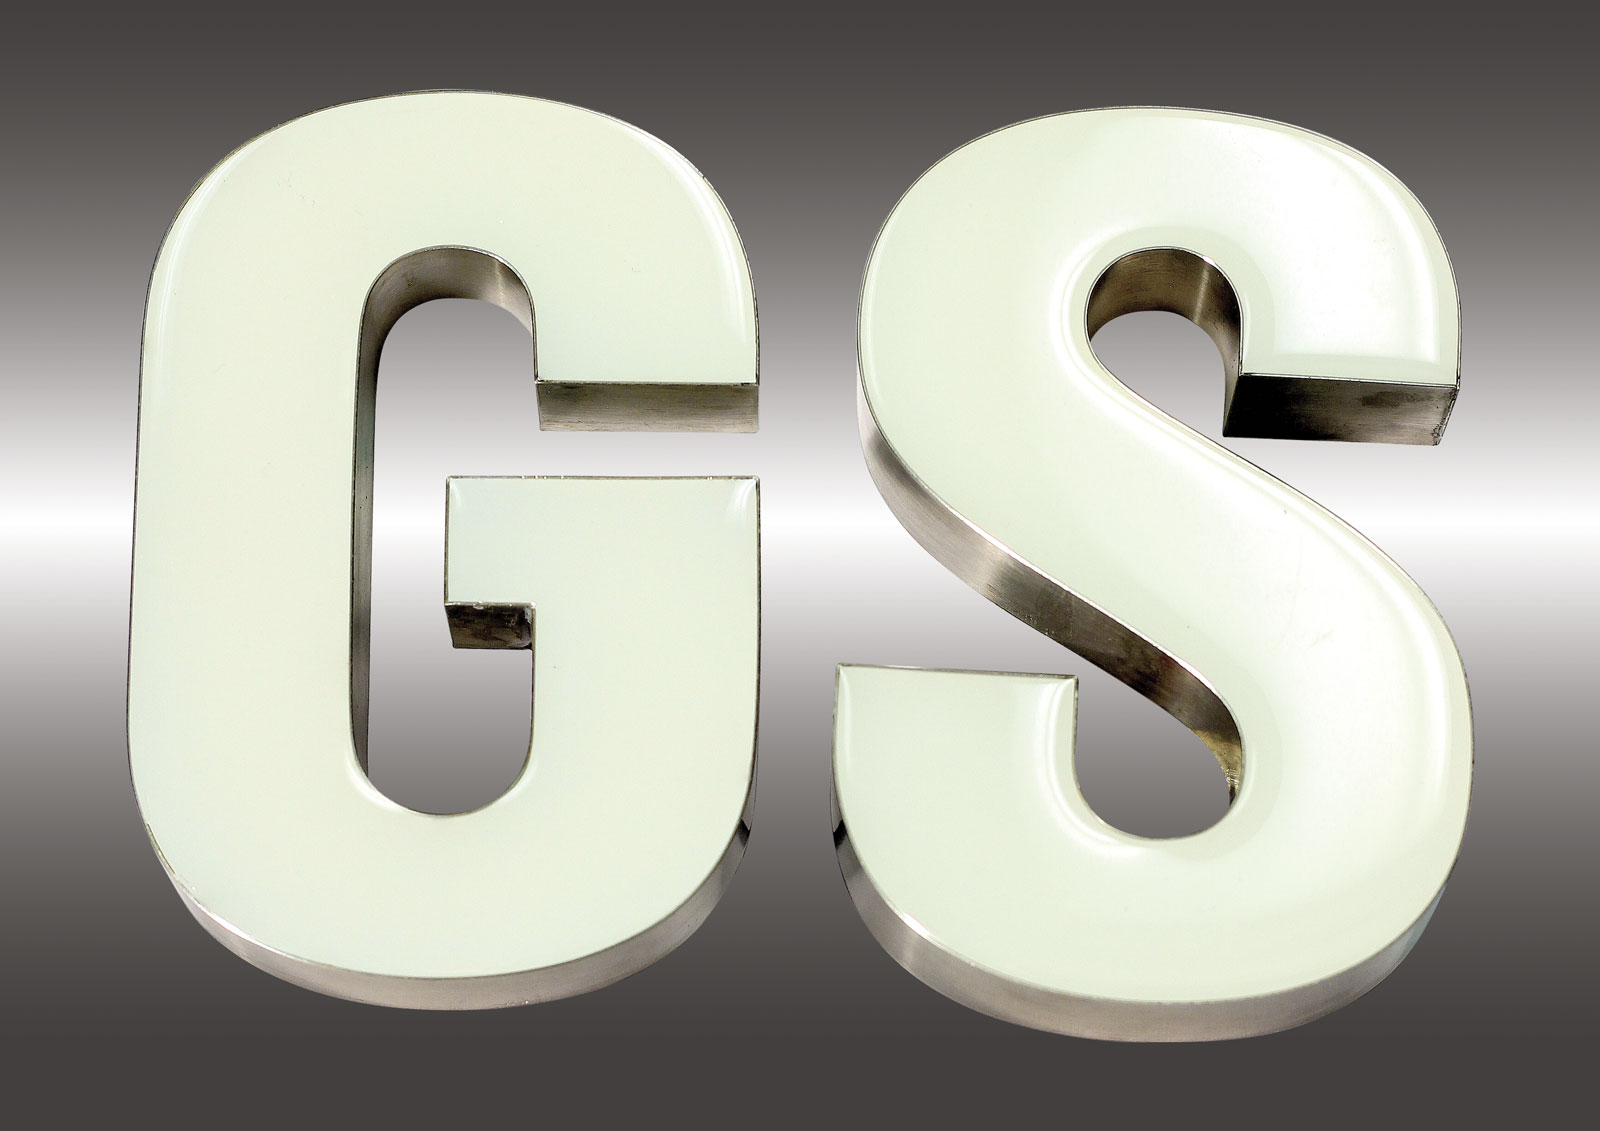 G & S letters